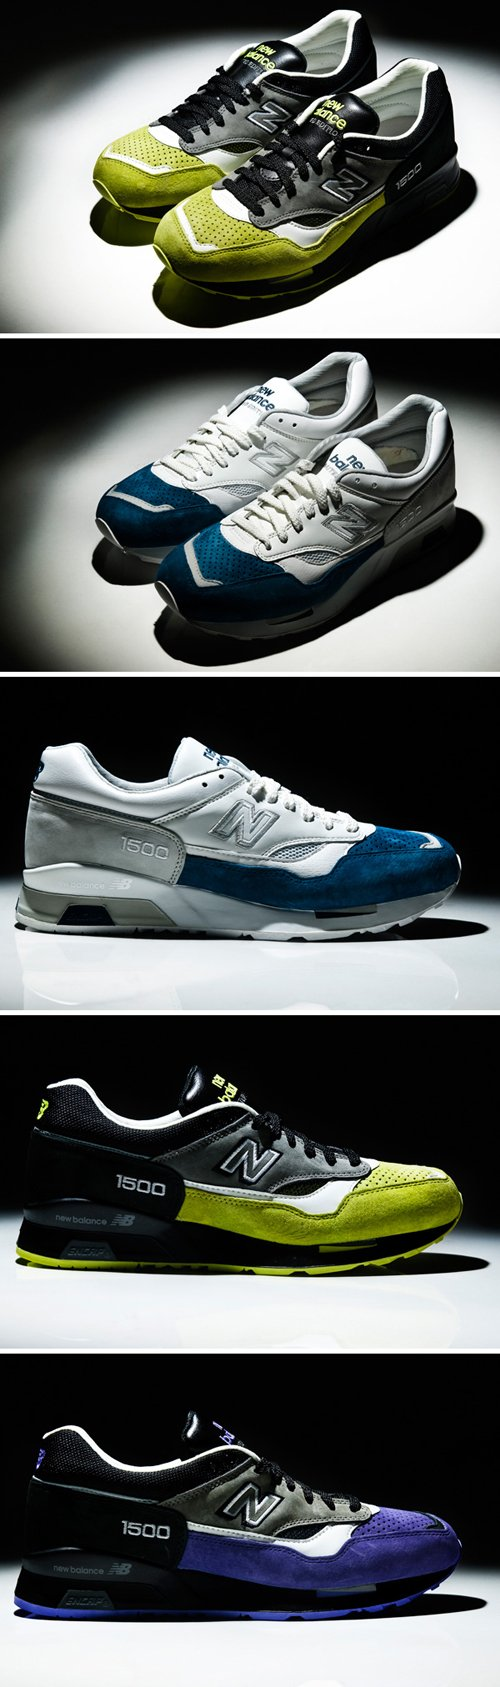 New-Balance-1500-Fall-Winter-09-1